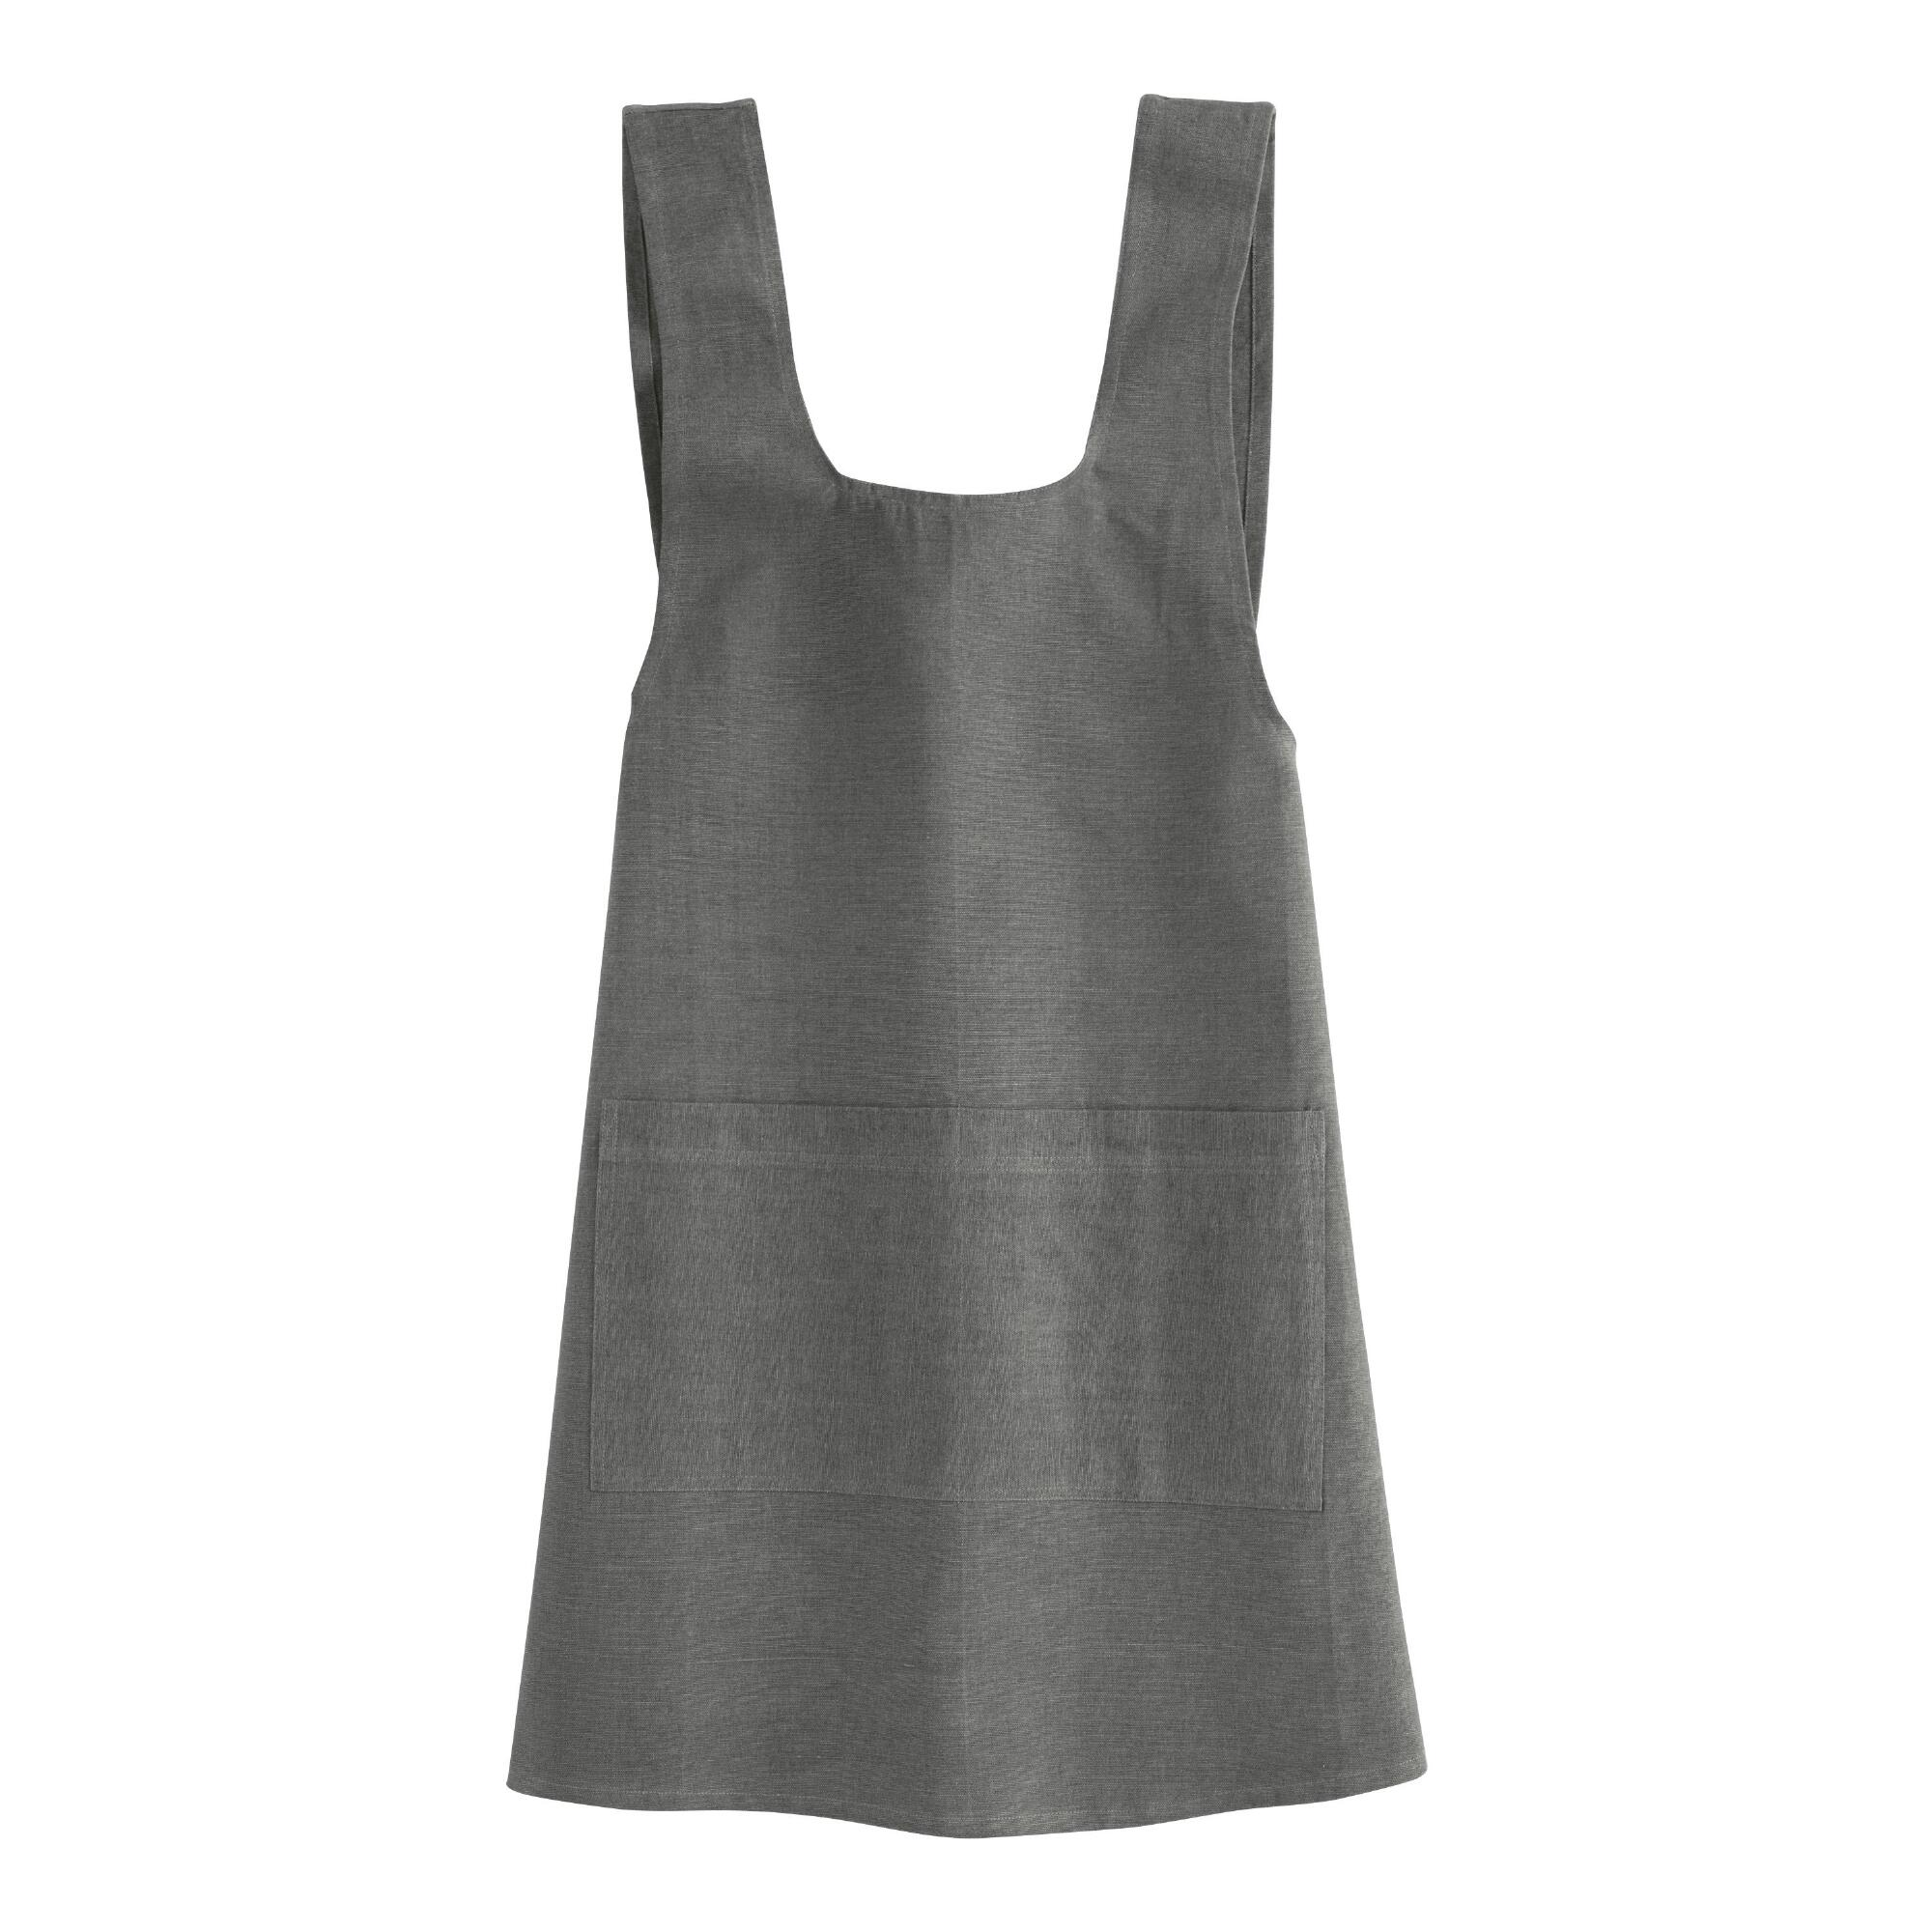 Vintage Aprons, Retro Aprons, Old Fashioned Aprons & Patterns Gray Washed Cotton Smock by World Market $19.99 AT vintagedancer.com